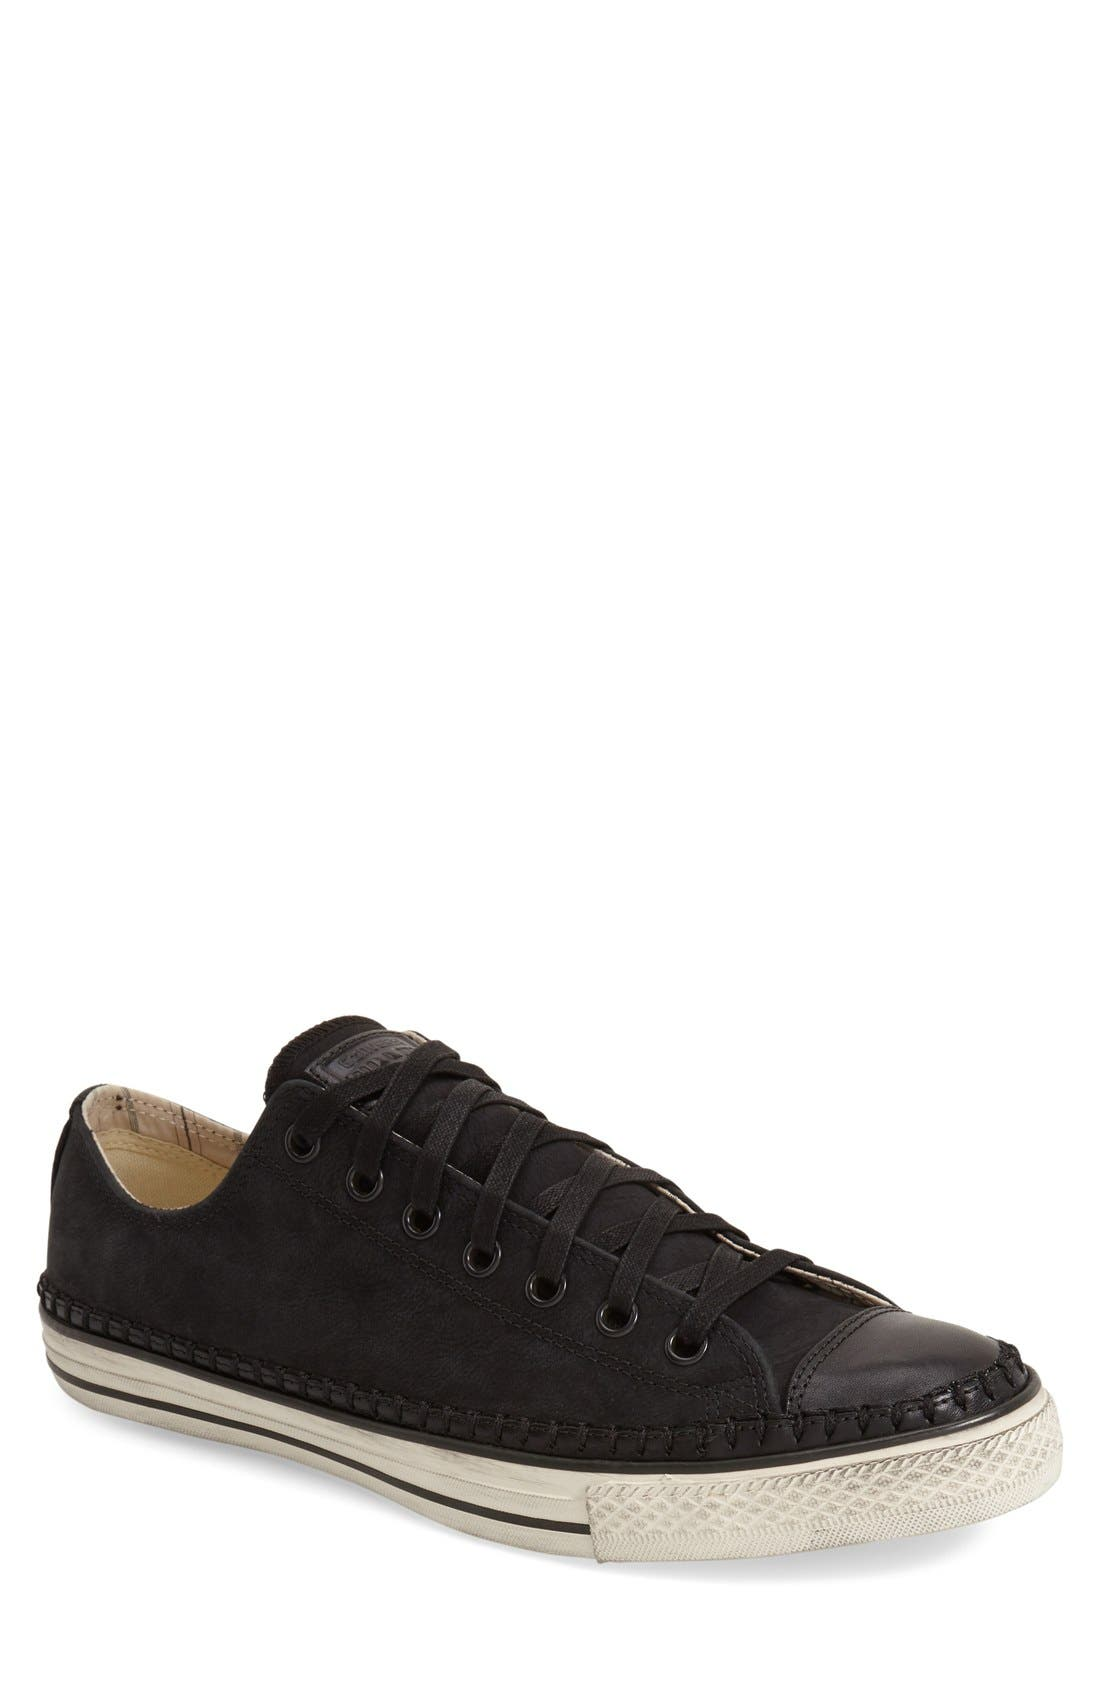 Chuck Taylor<sup>®</sup> All Star<sup>®</sup> Low-Top Sneaker,                             Main thumbnail 1, color,                             001